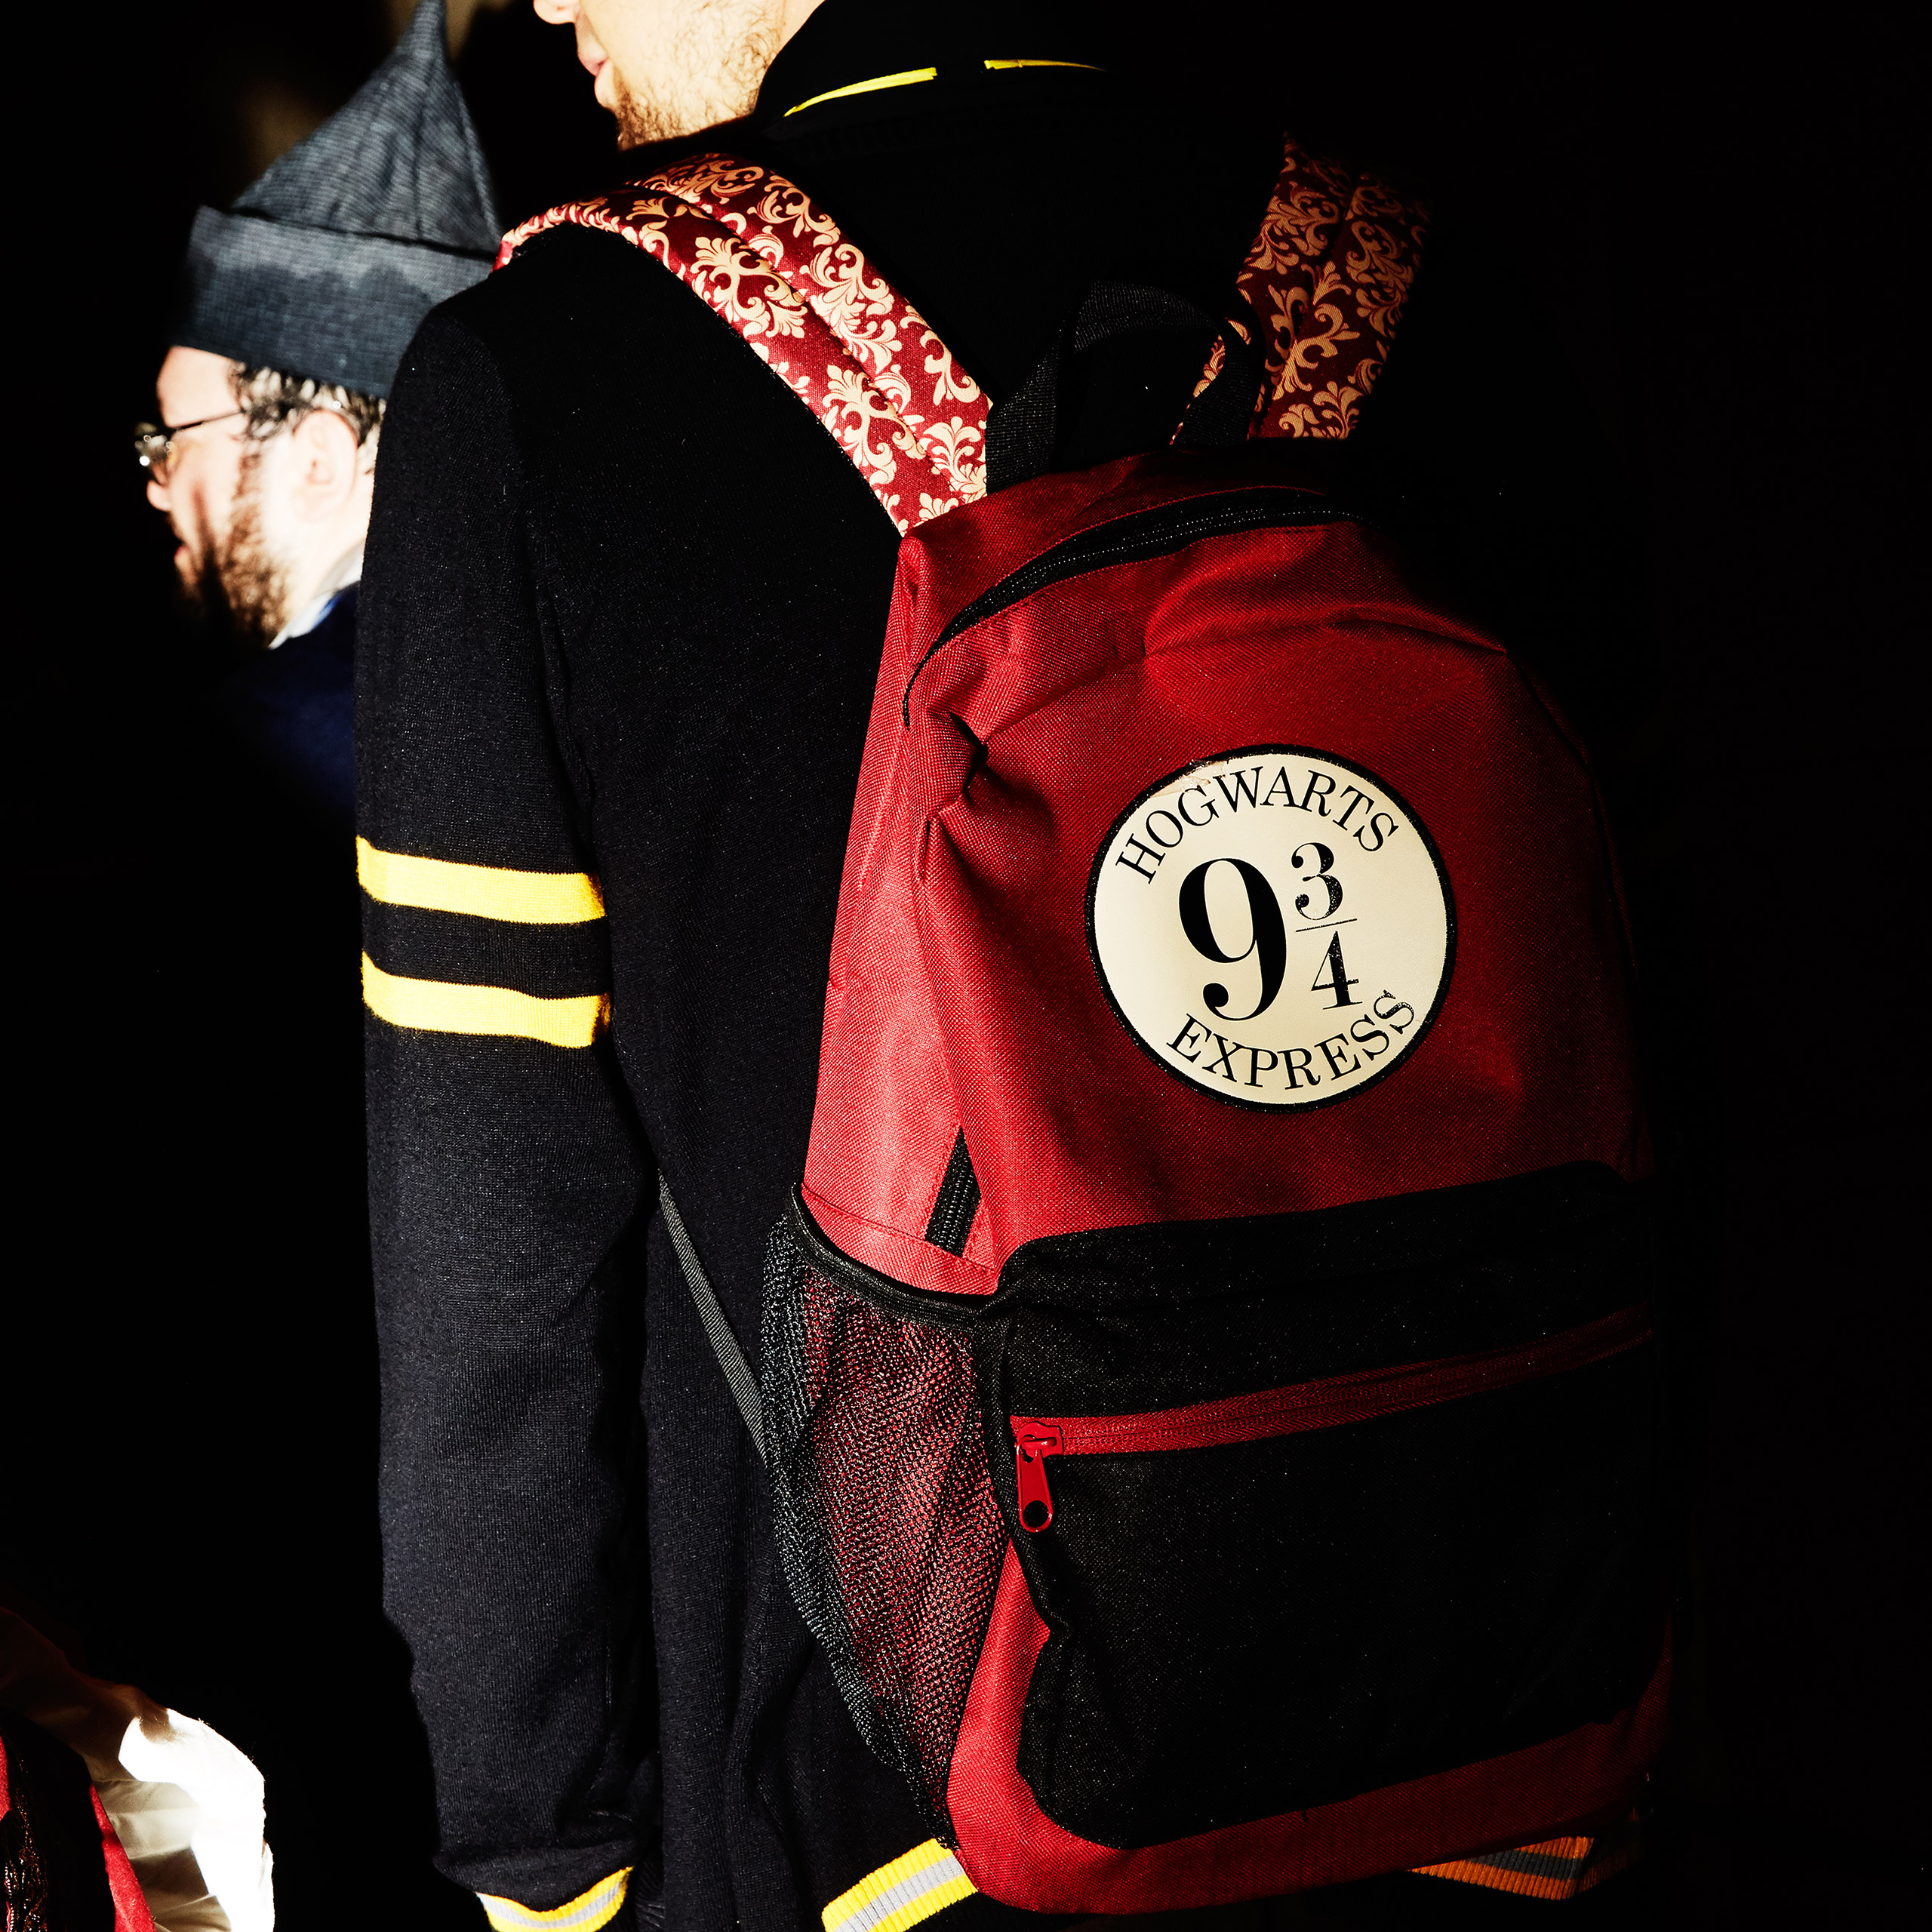 A member wears a 9 3/4 backpack to one of the group's meetings.